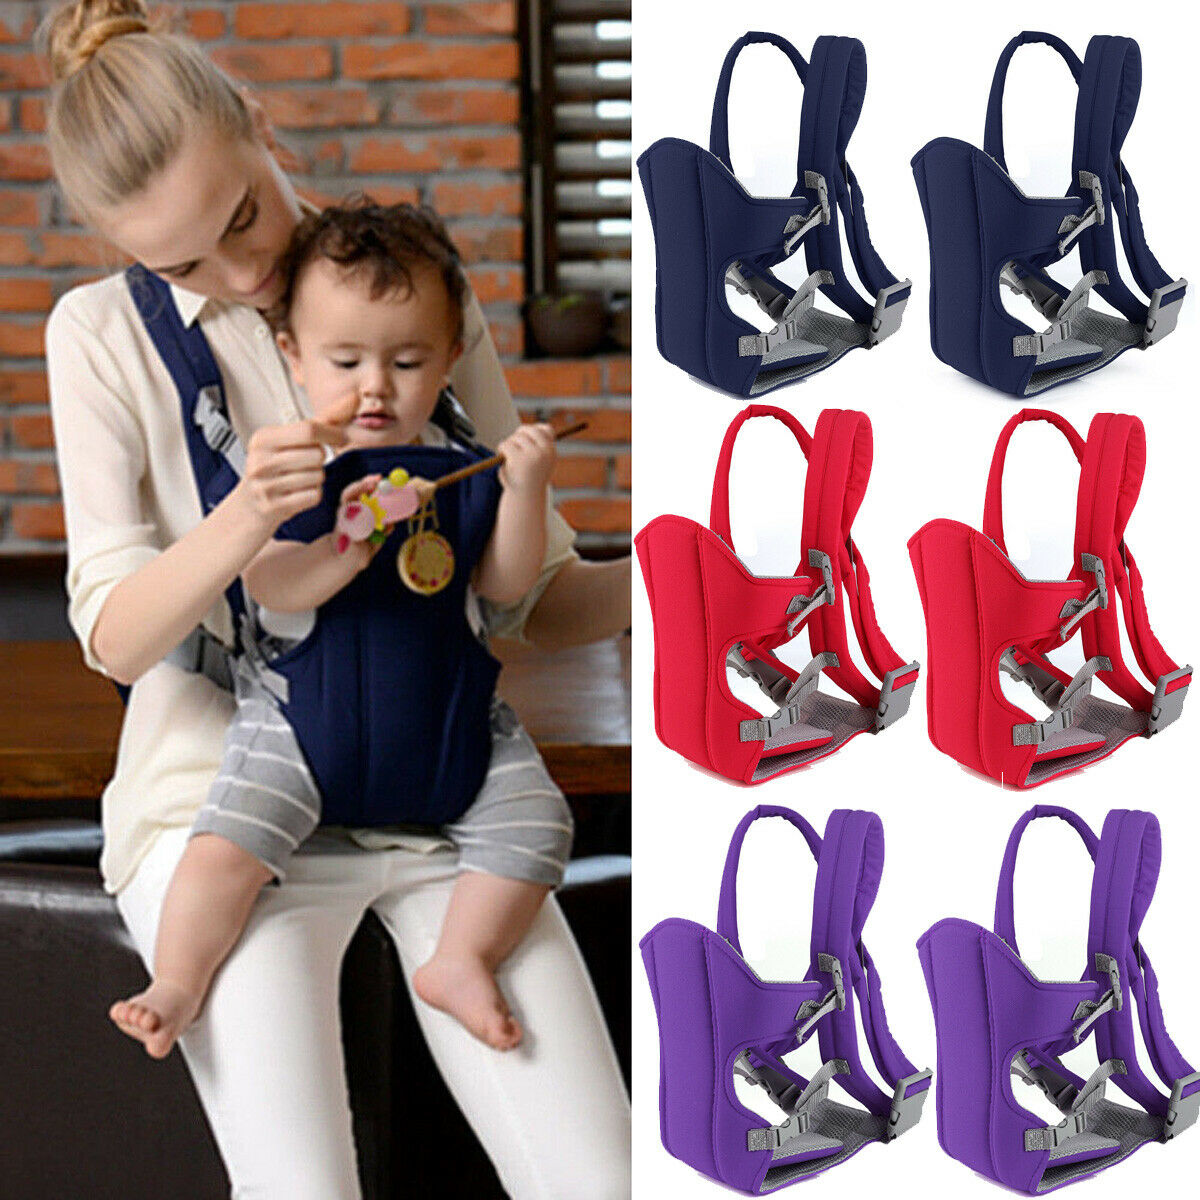 new-hot-newborn-infant-baby-carrier-ergonomic-adjustable-breathable-wrap-sling-backpack-baby-care-artifact